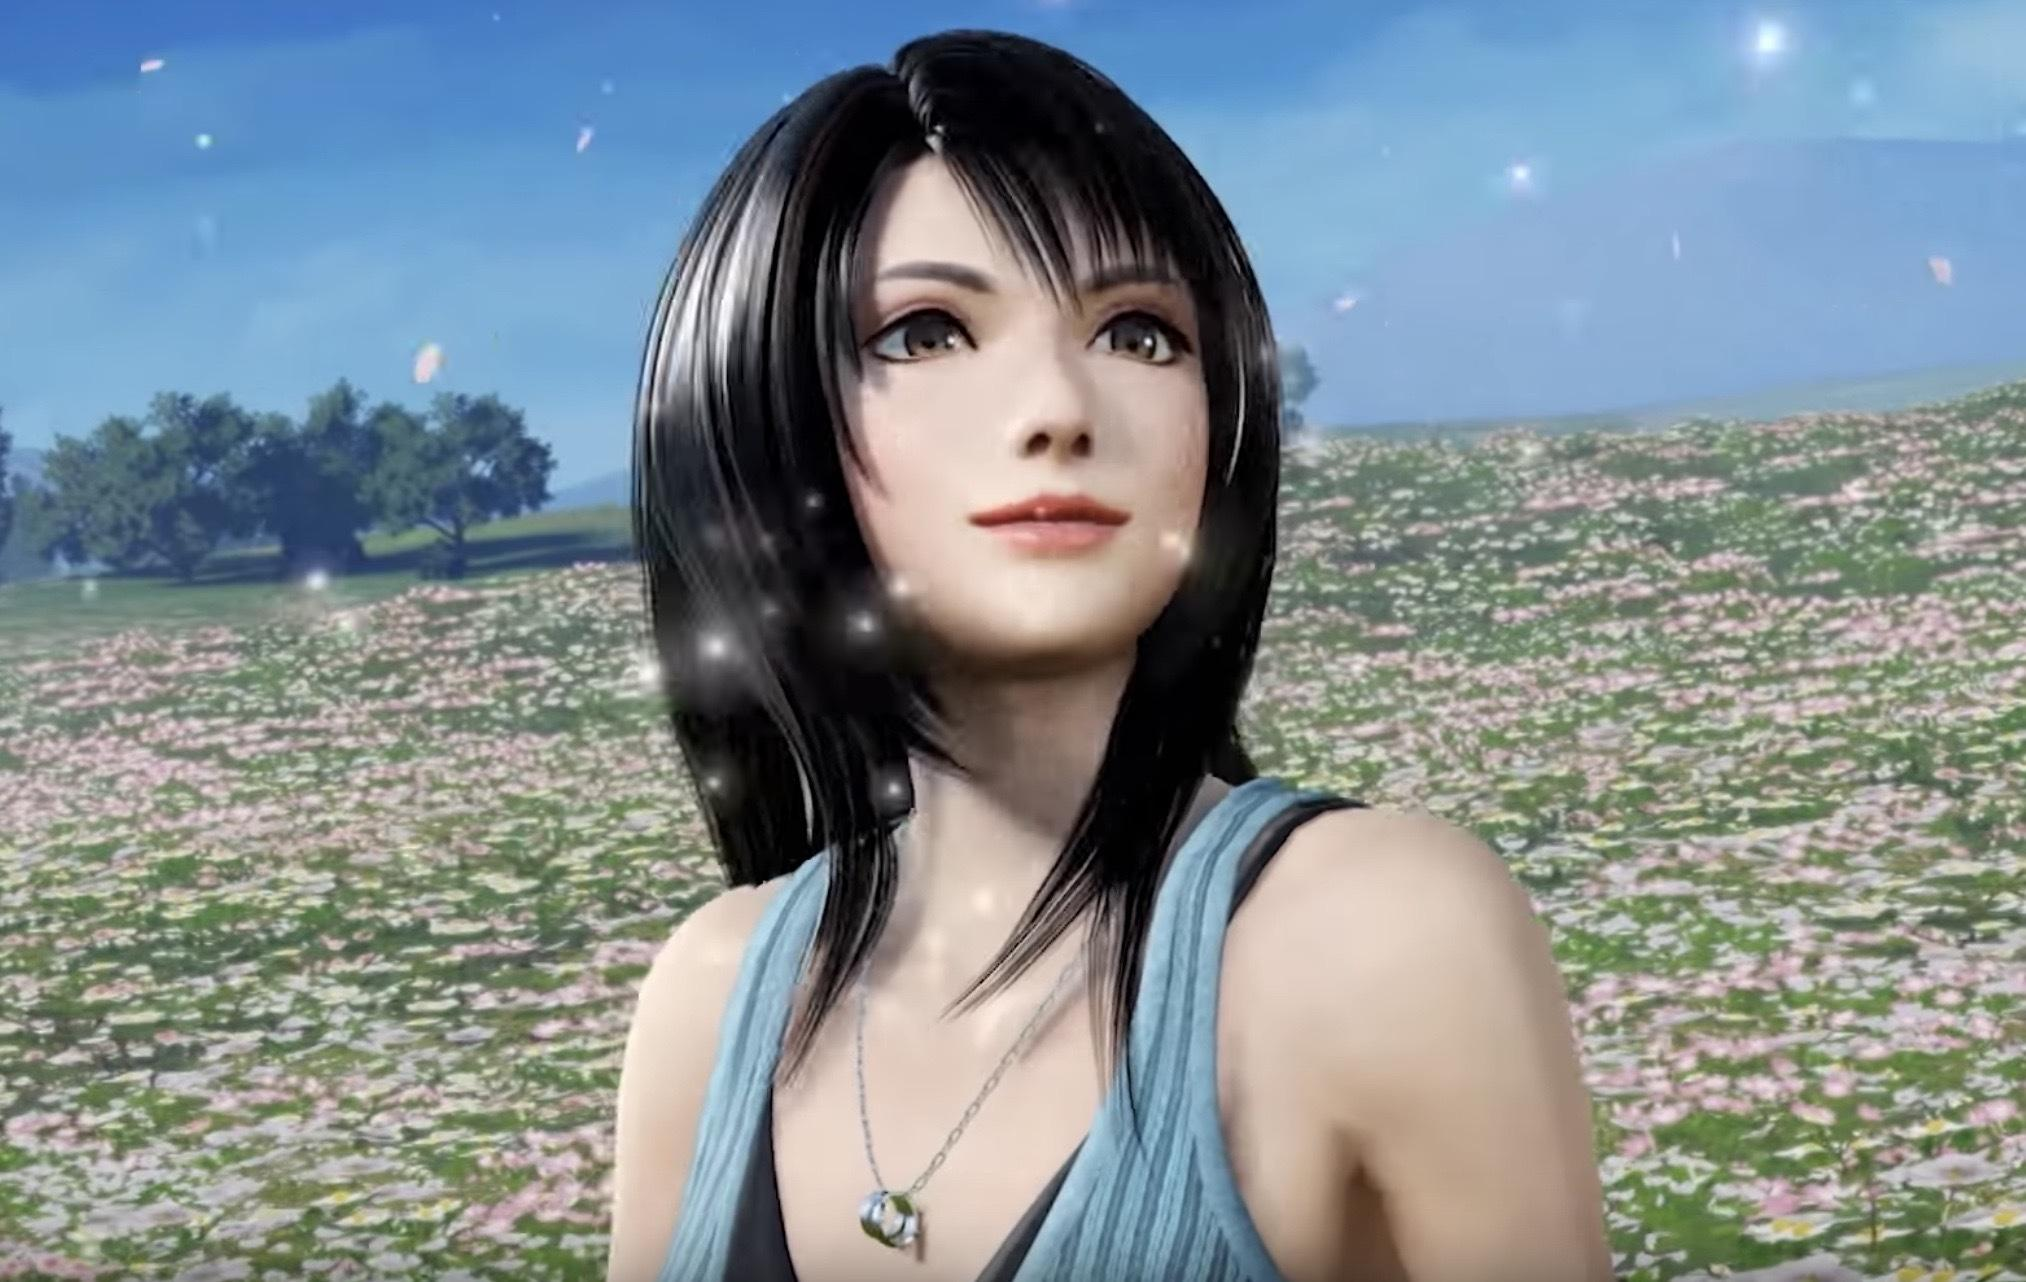 https://img.playstationtrophies.org/images/news/rinoa.jpg